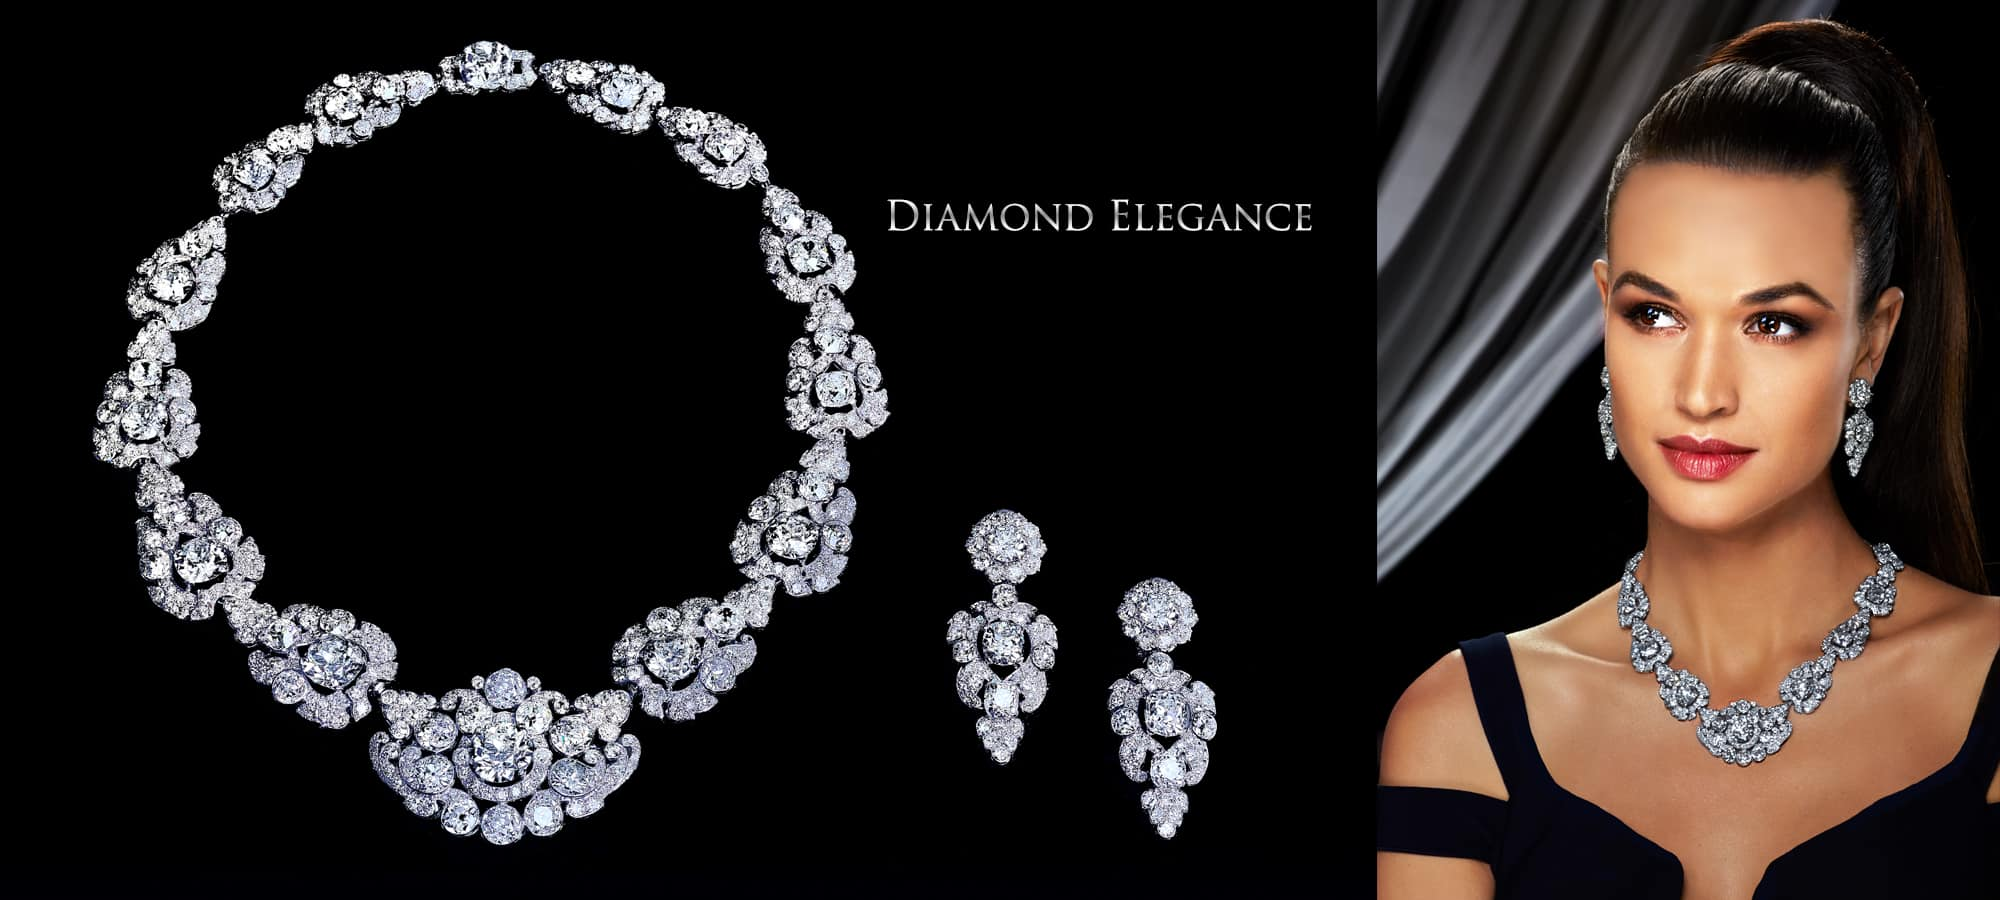 Extraordinary Diamond and Platinum Necklace and Earring Suite by Cartier, London. Circa 1935.